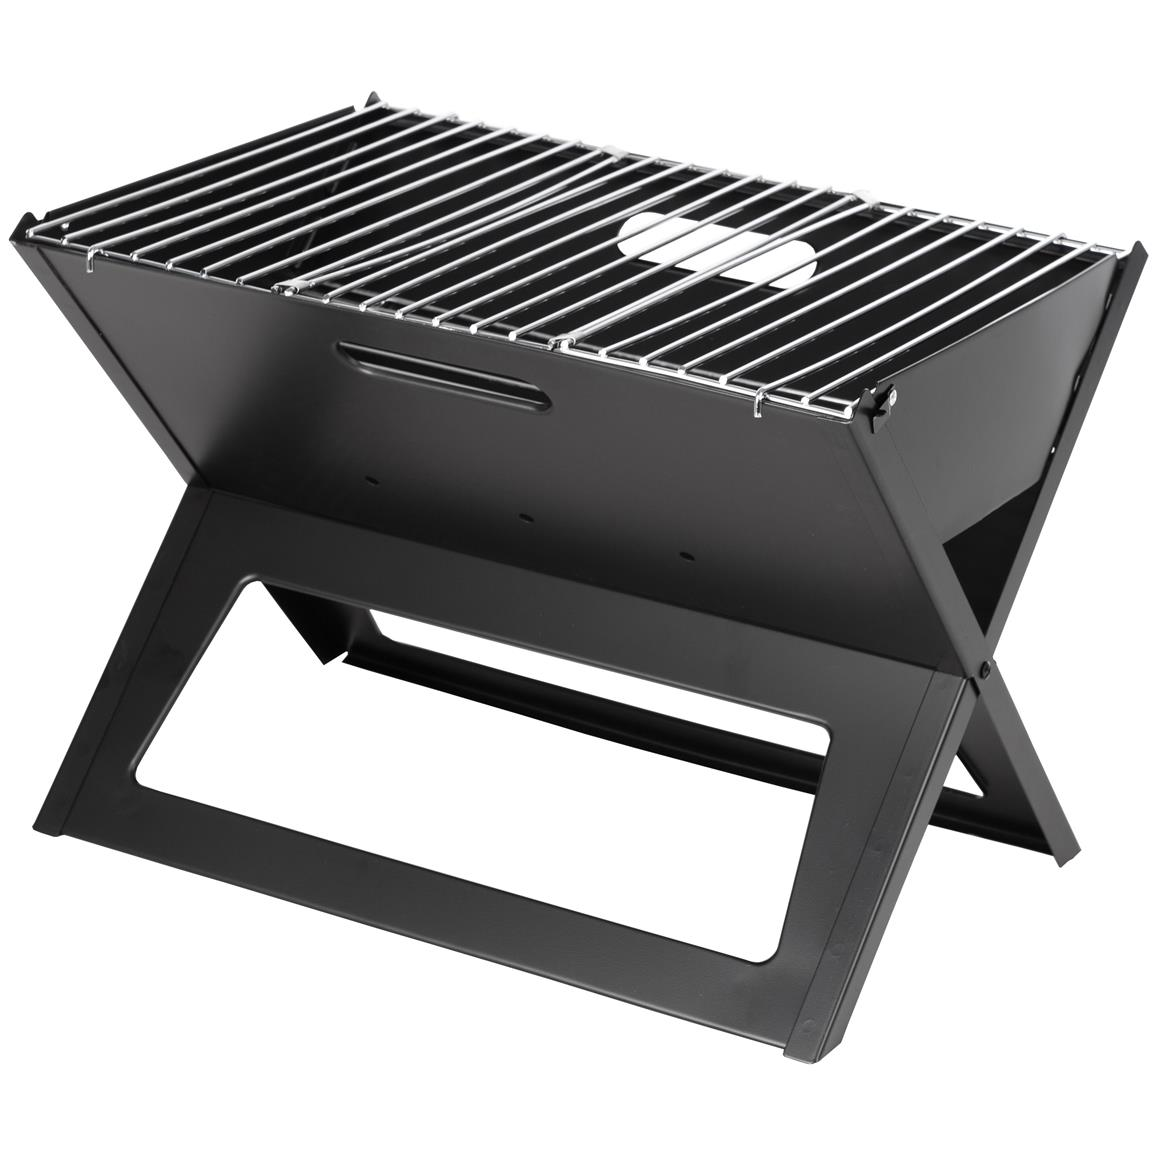 notebook charcoal grill black 281324 grills smokers